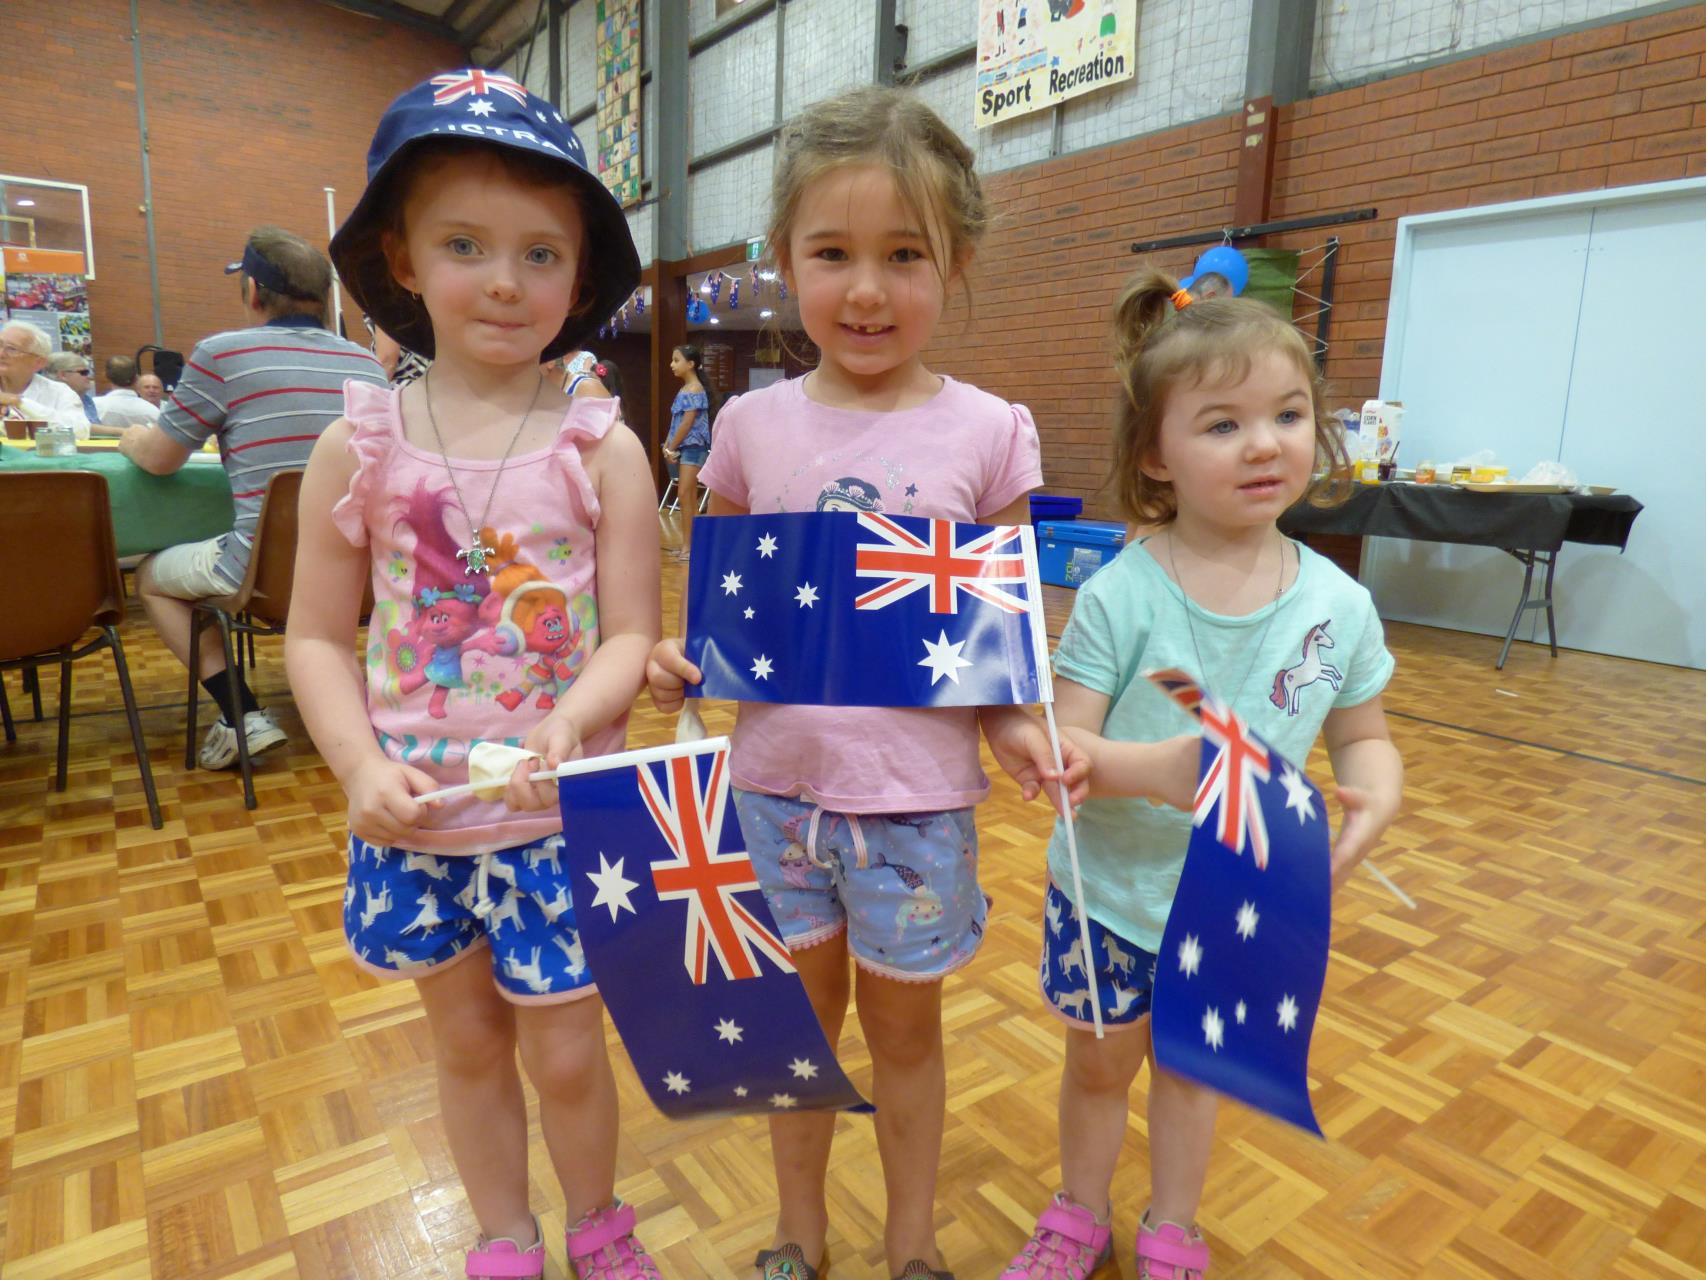 The Australia Day was alive with everyone